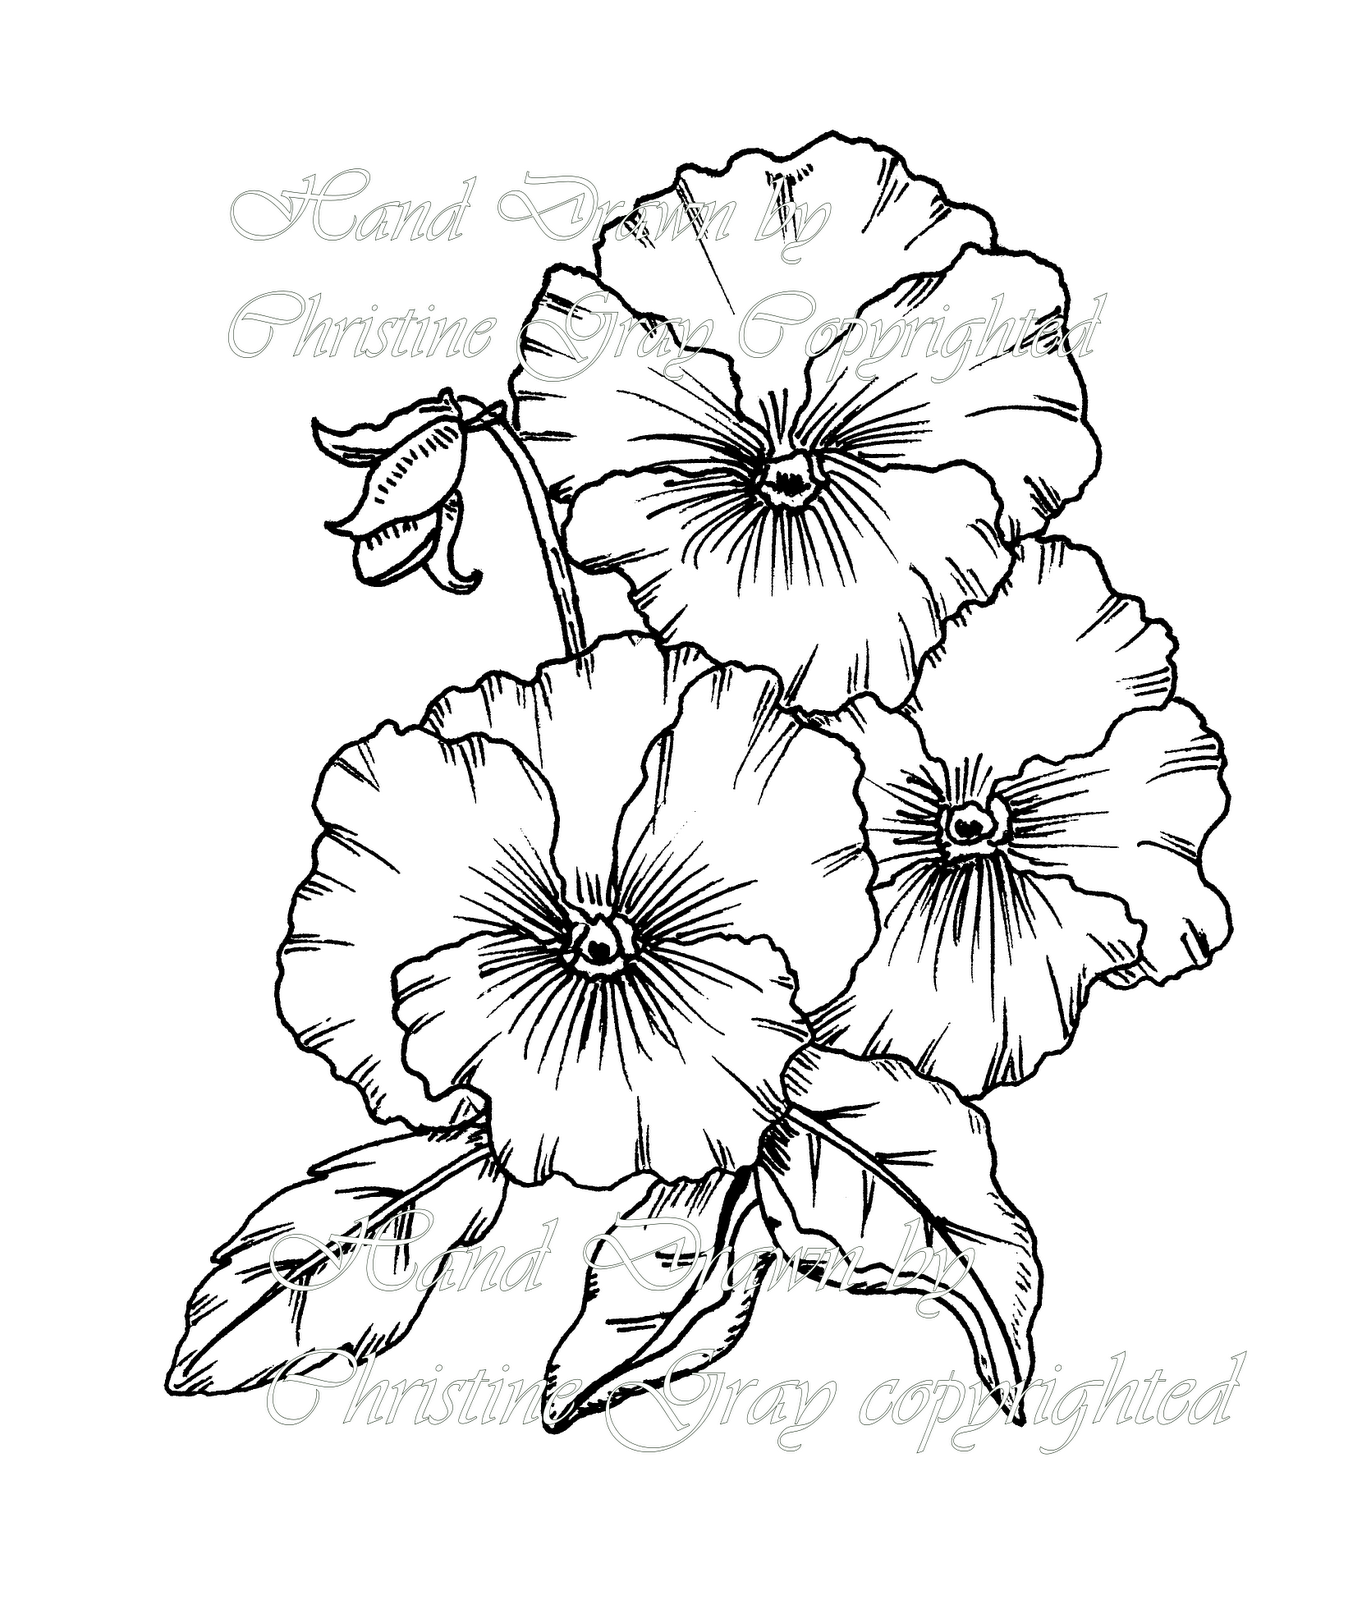 pansy flower drawing - photo #1